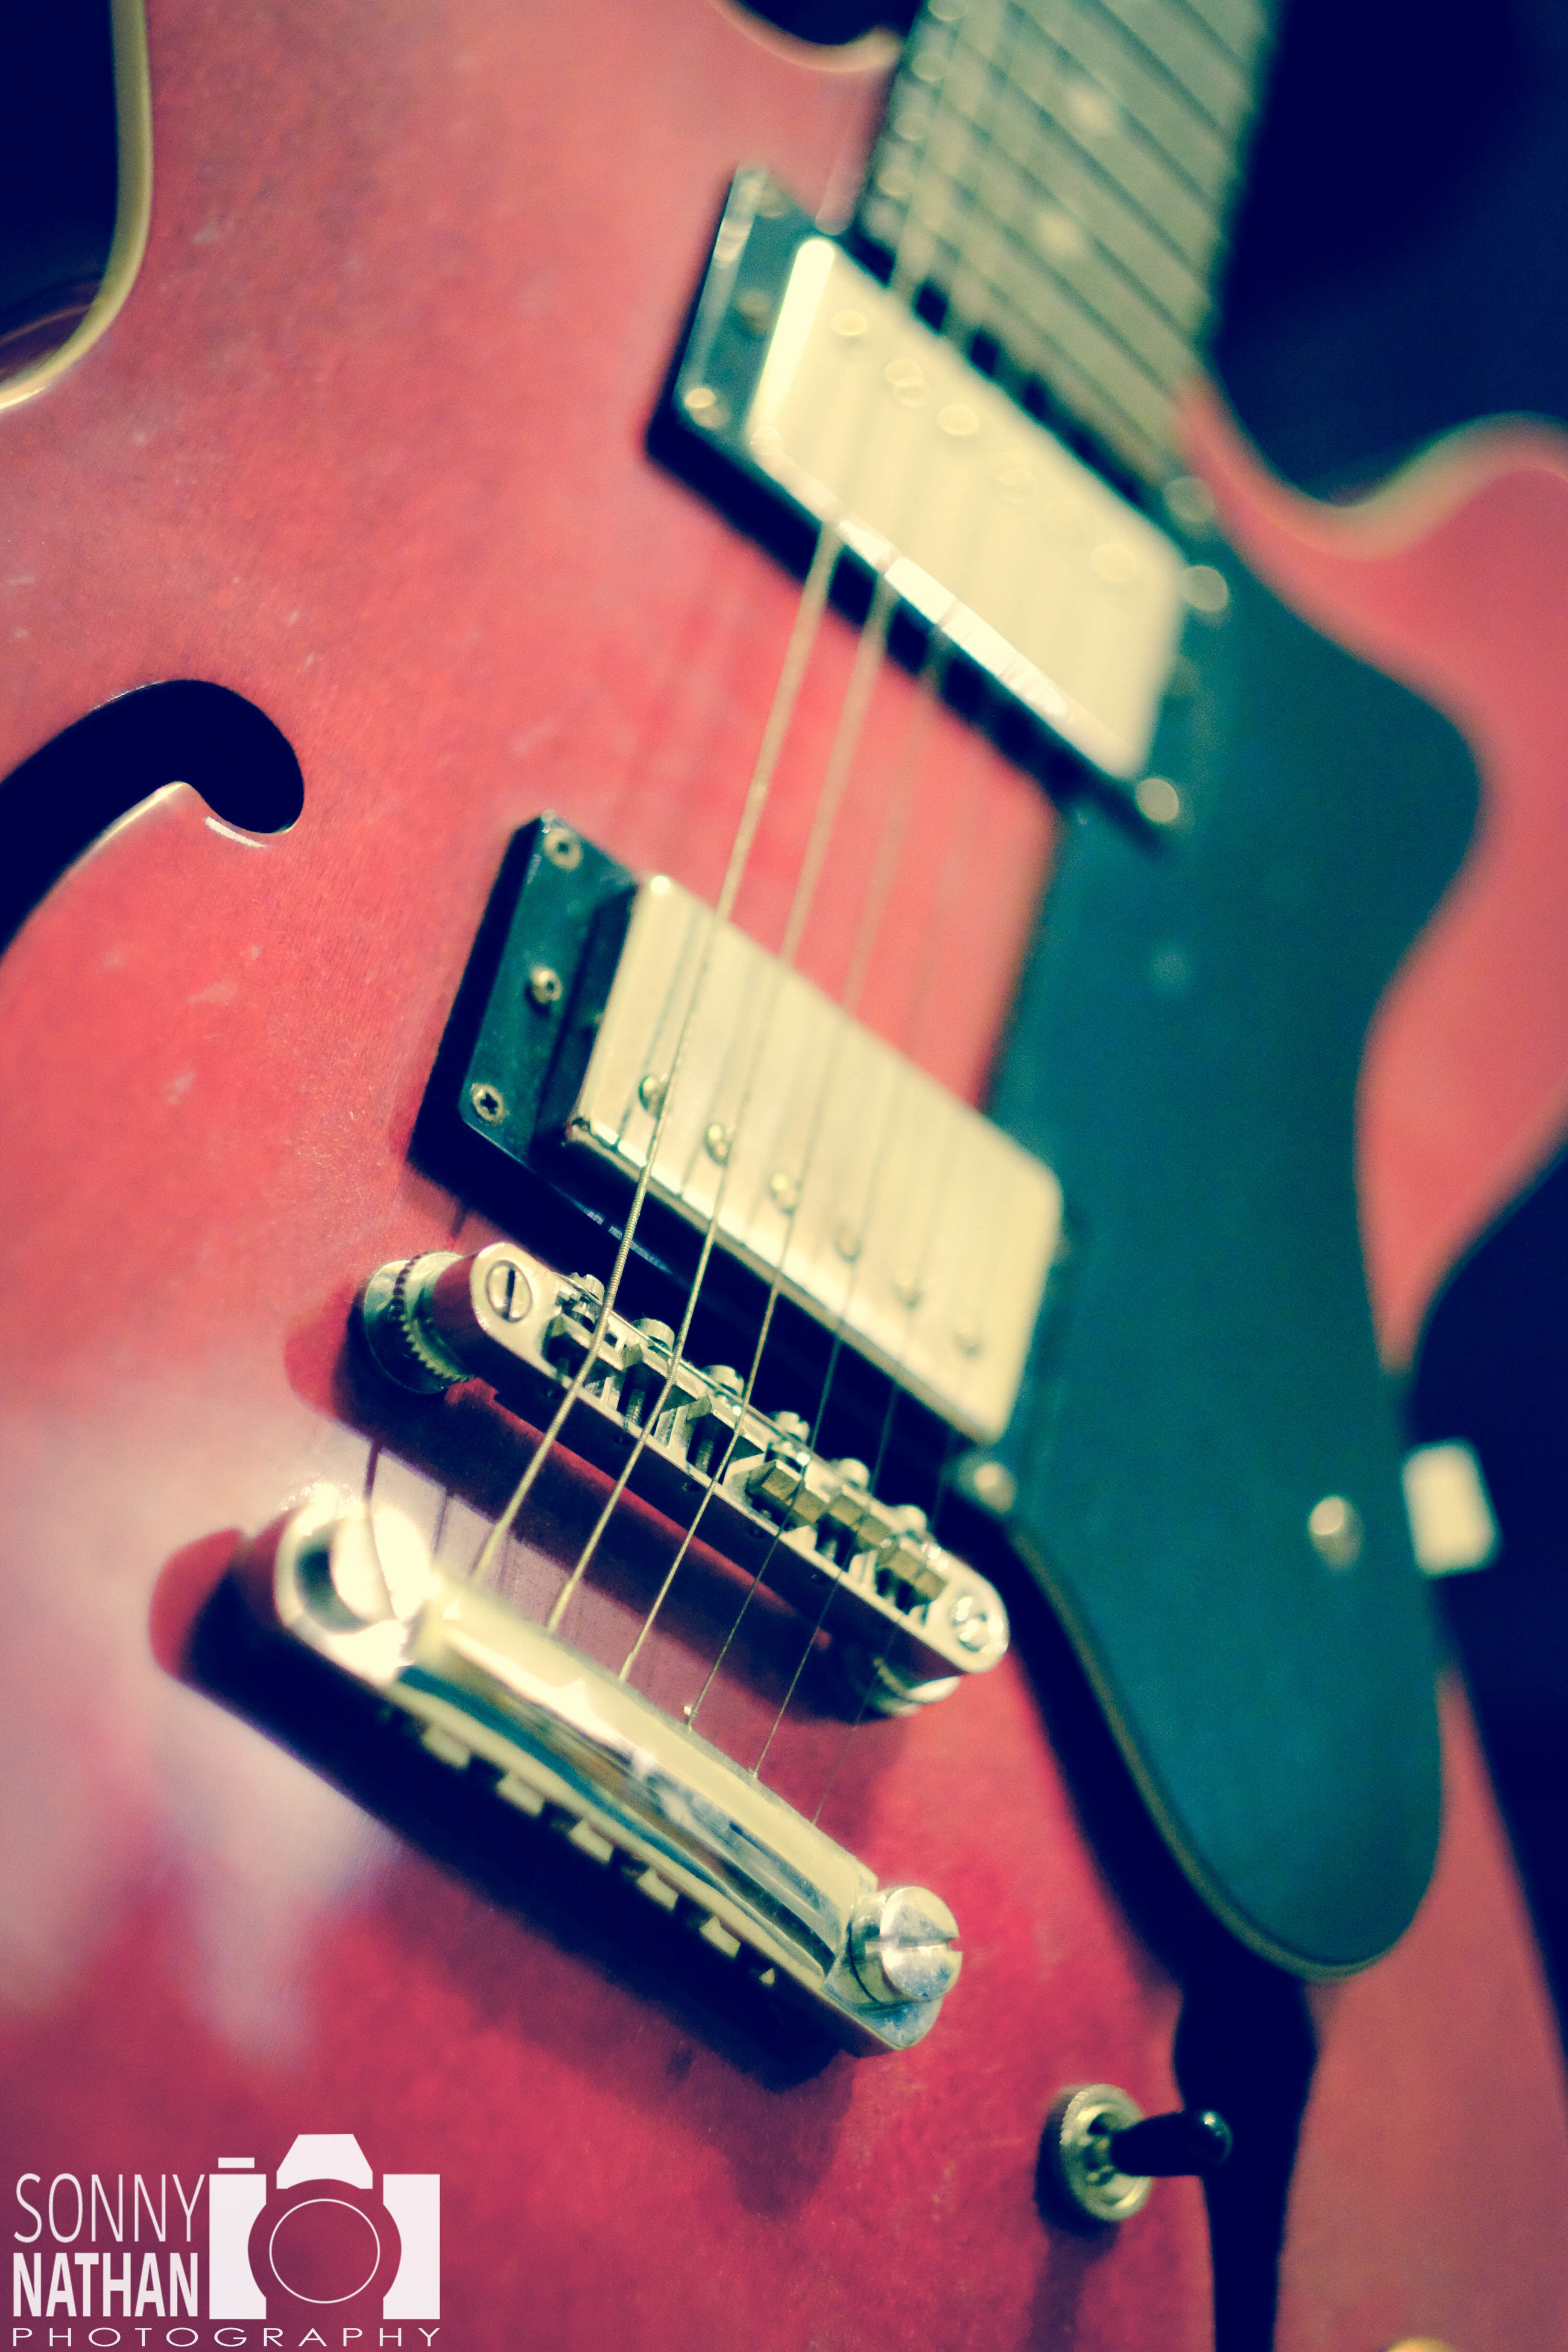 indoors, music, table, still life, close-up, musical instrument, arts culture and entertainment, high angle view, technology, communication, musical equipment, guitar, wireless technology, selective focus, variation, text, pencil, no people, musical instrument string, connection